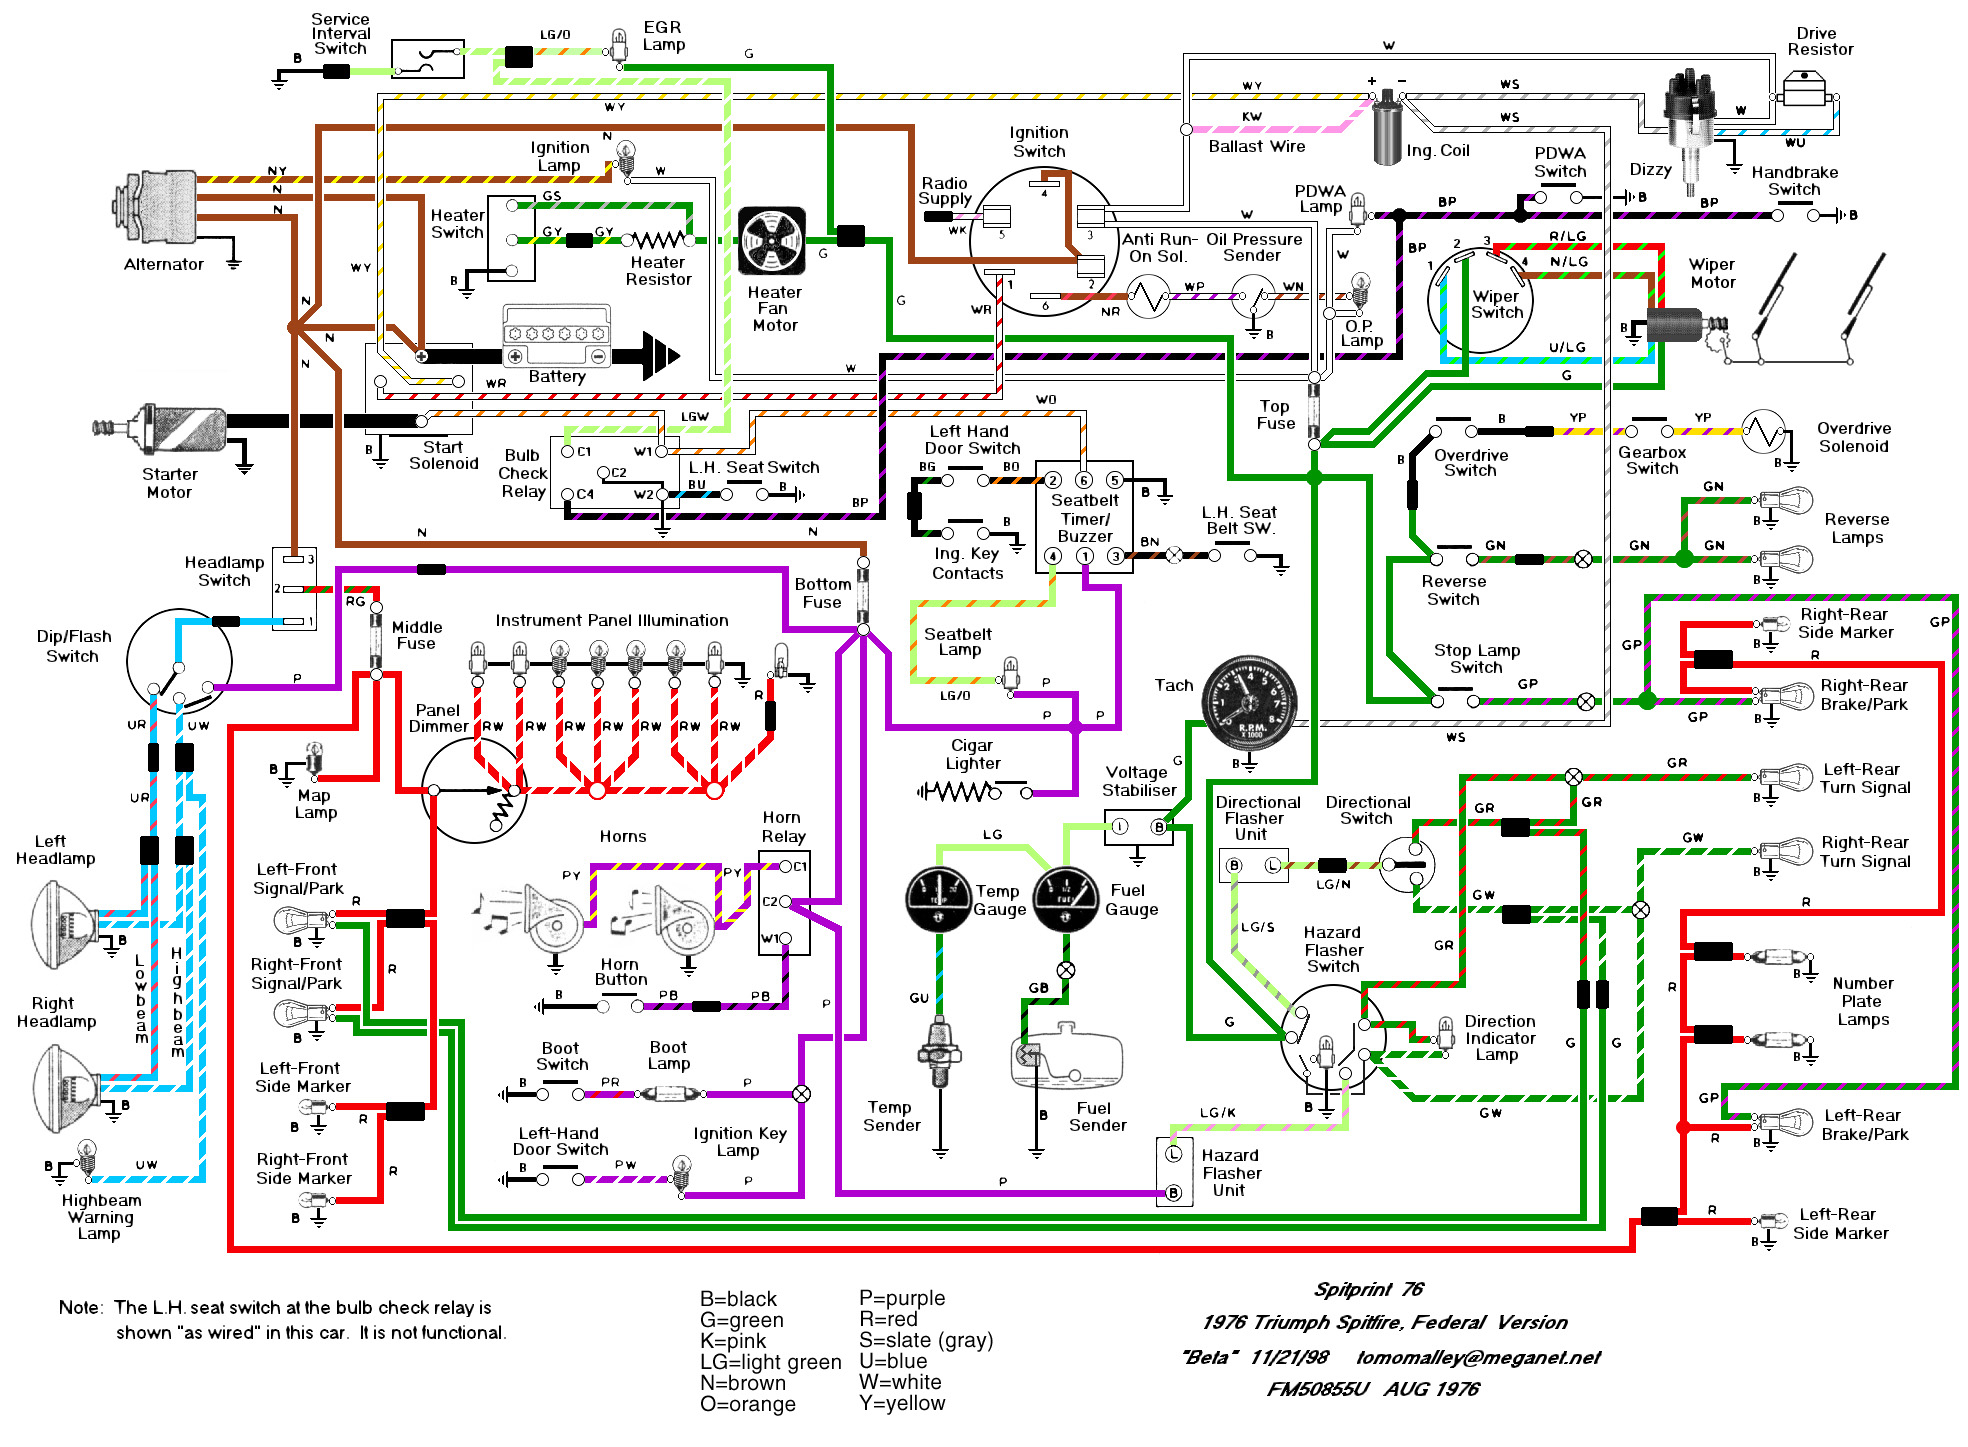 76diagram misha collins net tractor engine and wiring diagram International Tractor Wiring Diagram at soozxer.org